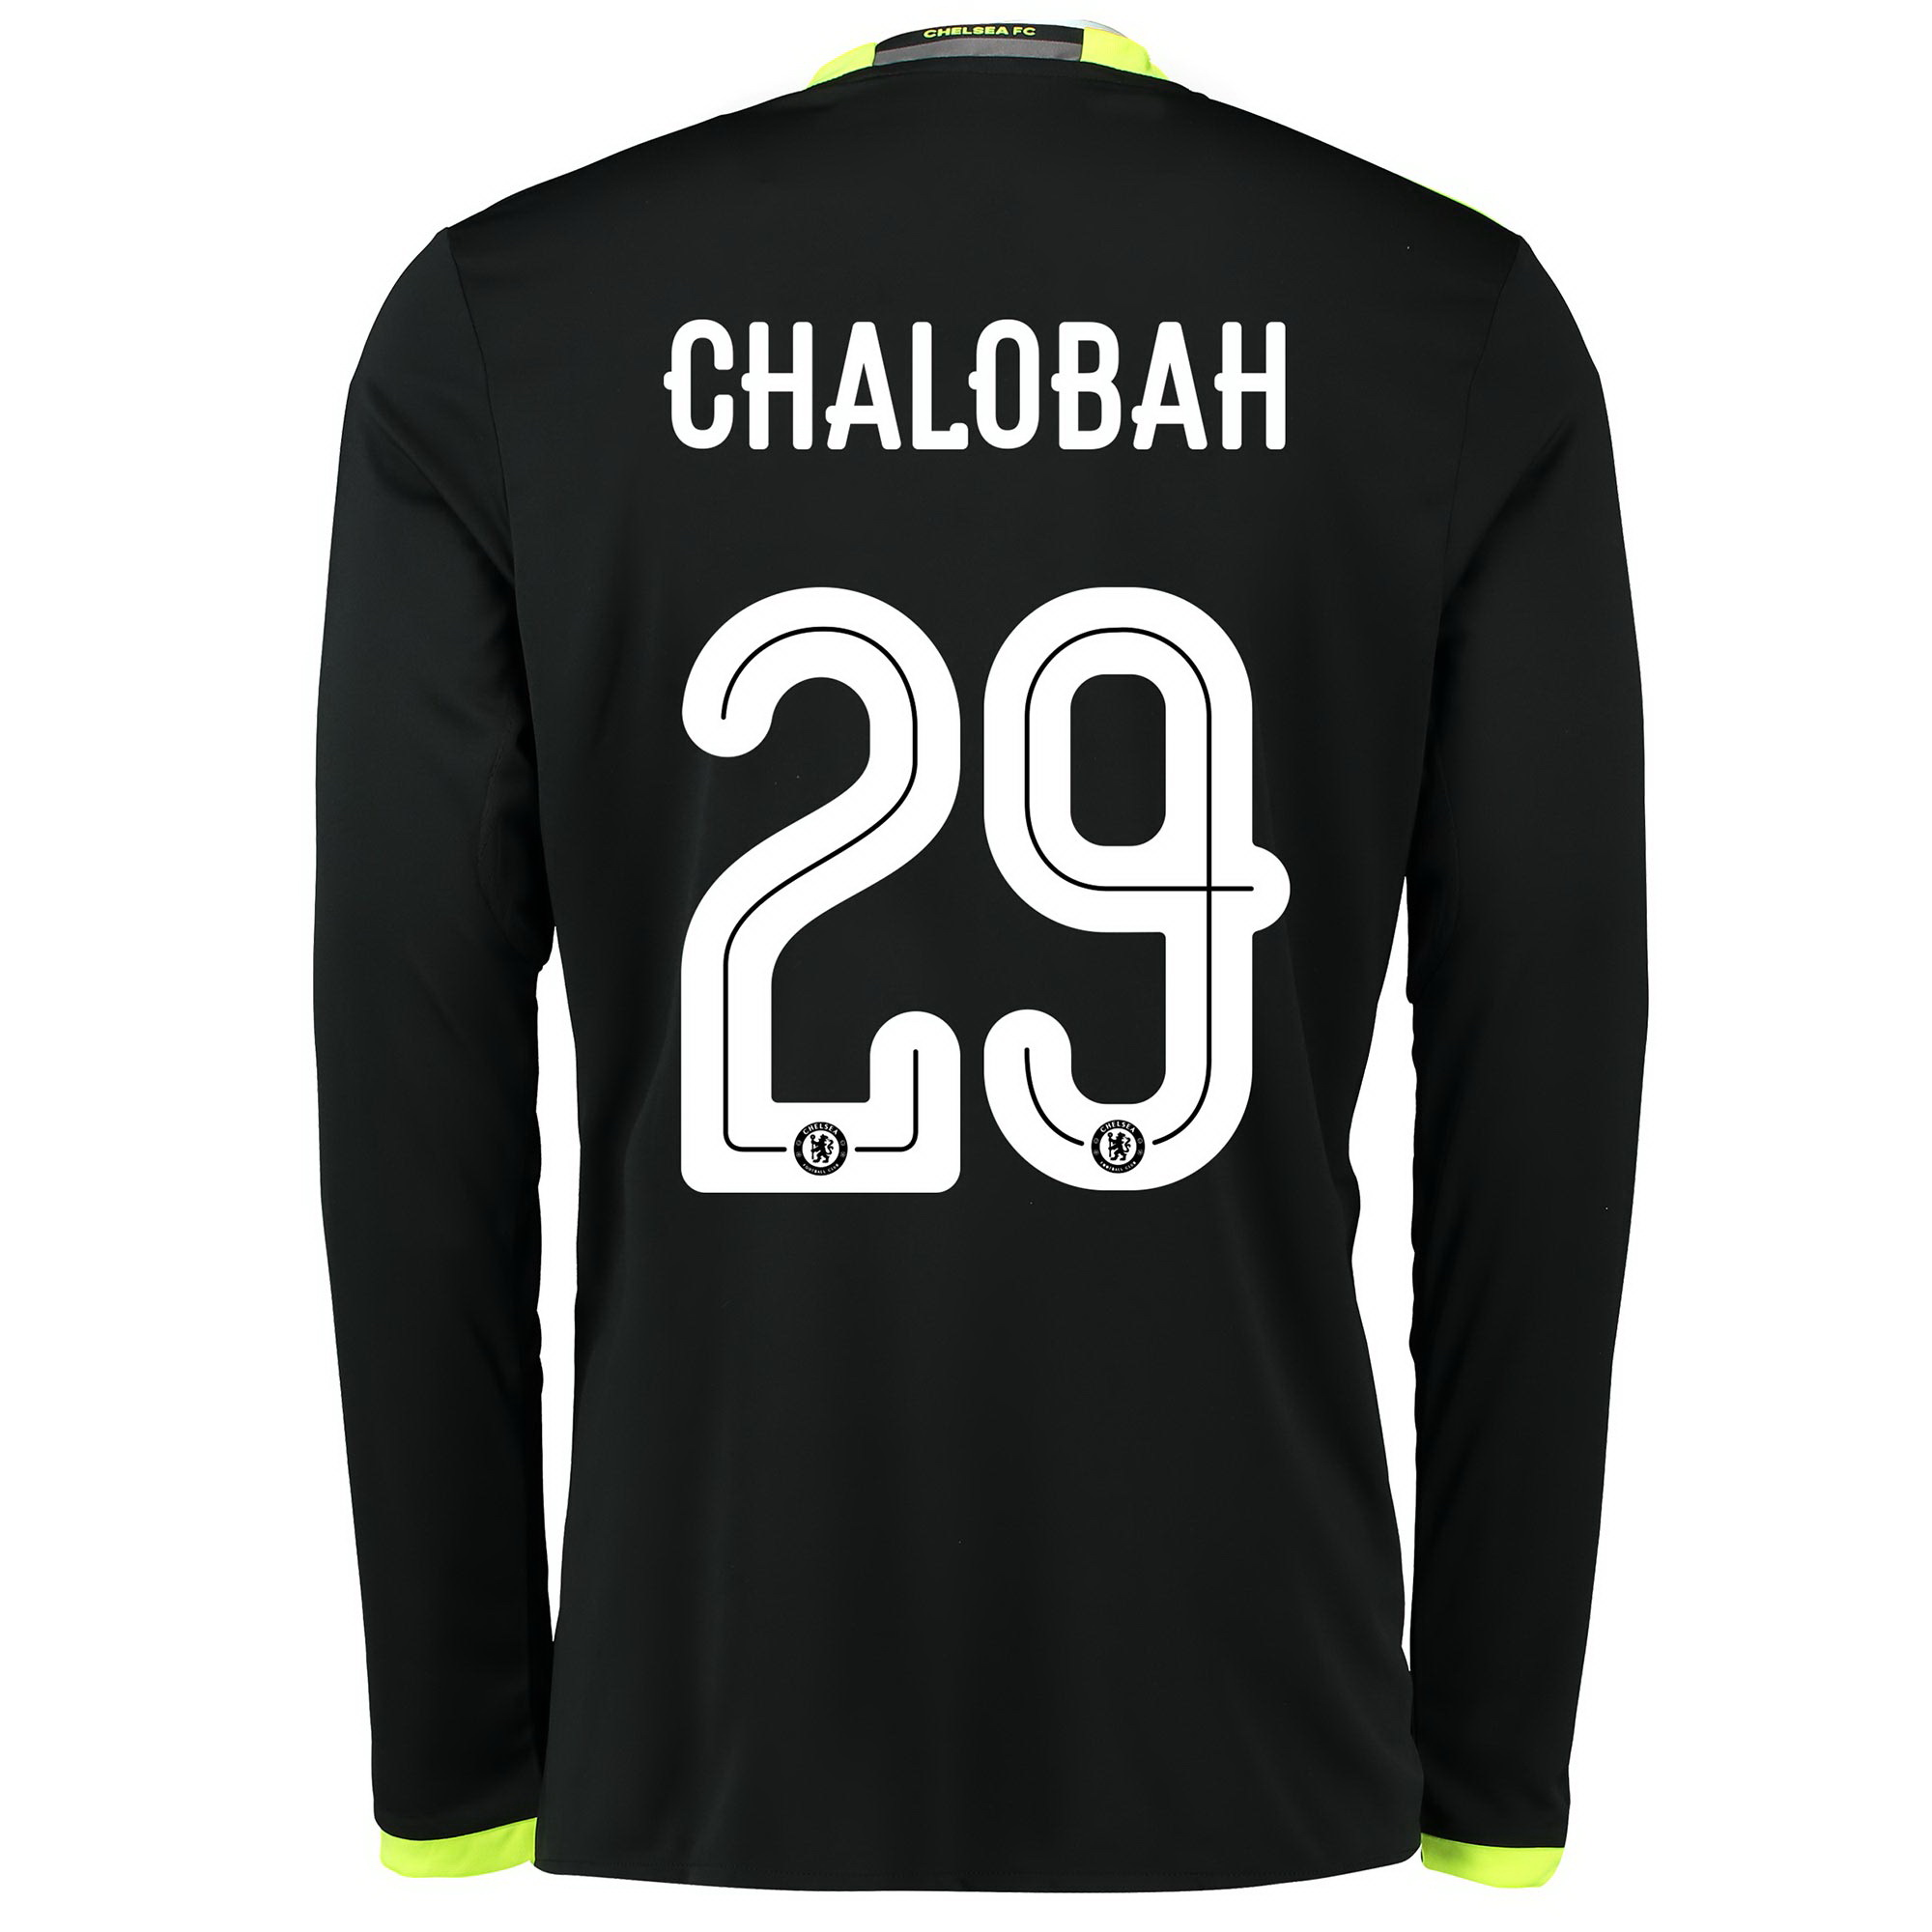 Chelsea Linear Away Shirt 16-17 - Kids - Long Sleeve with Chalobah 29